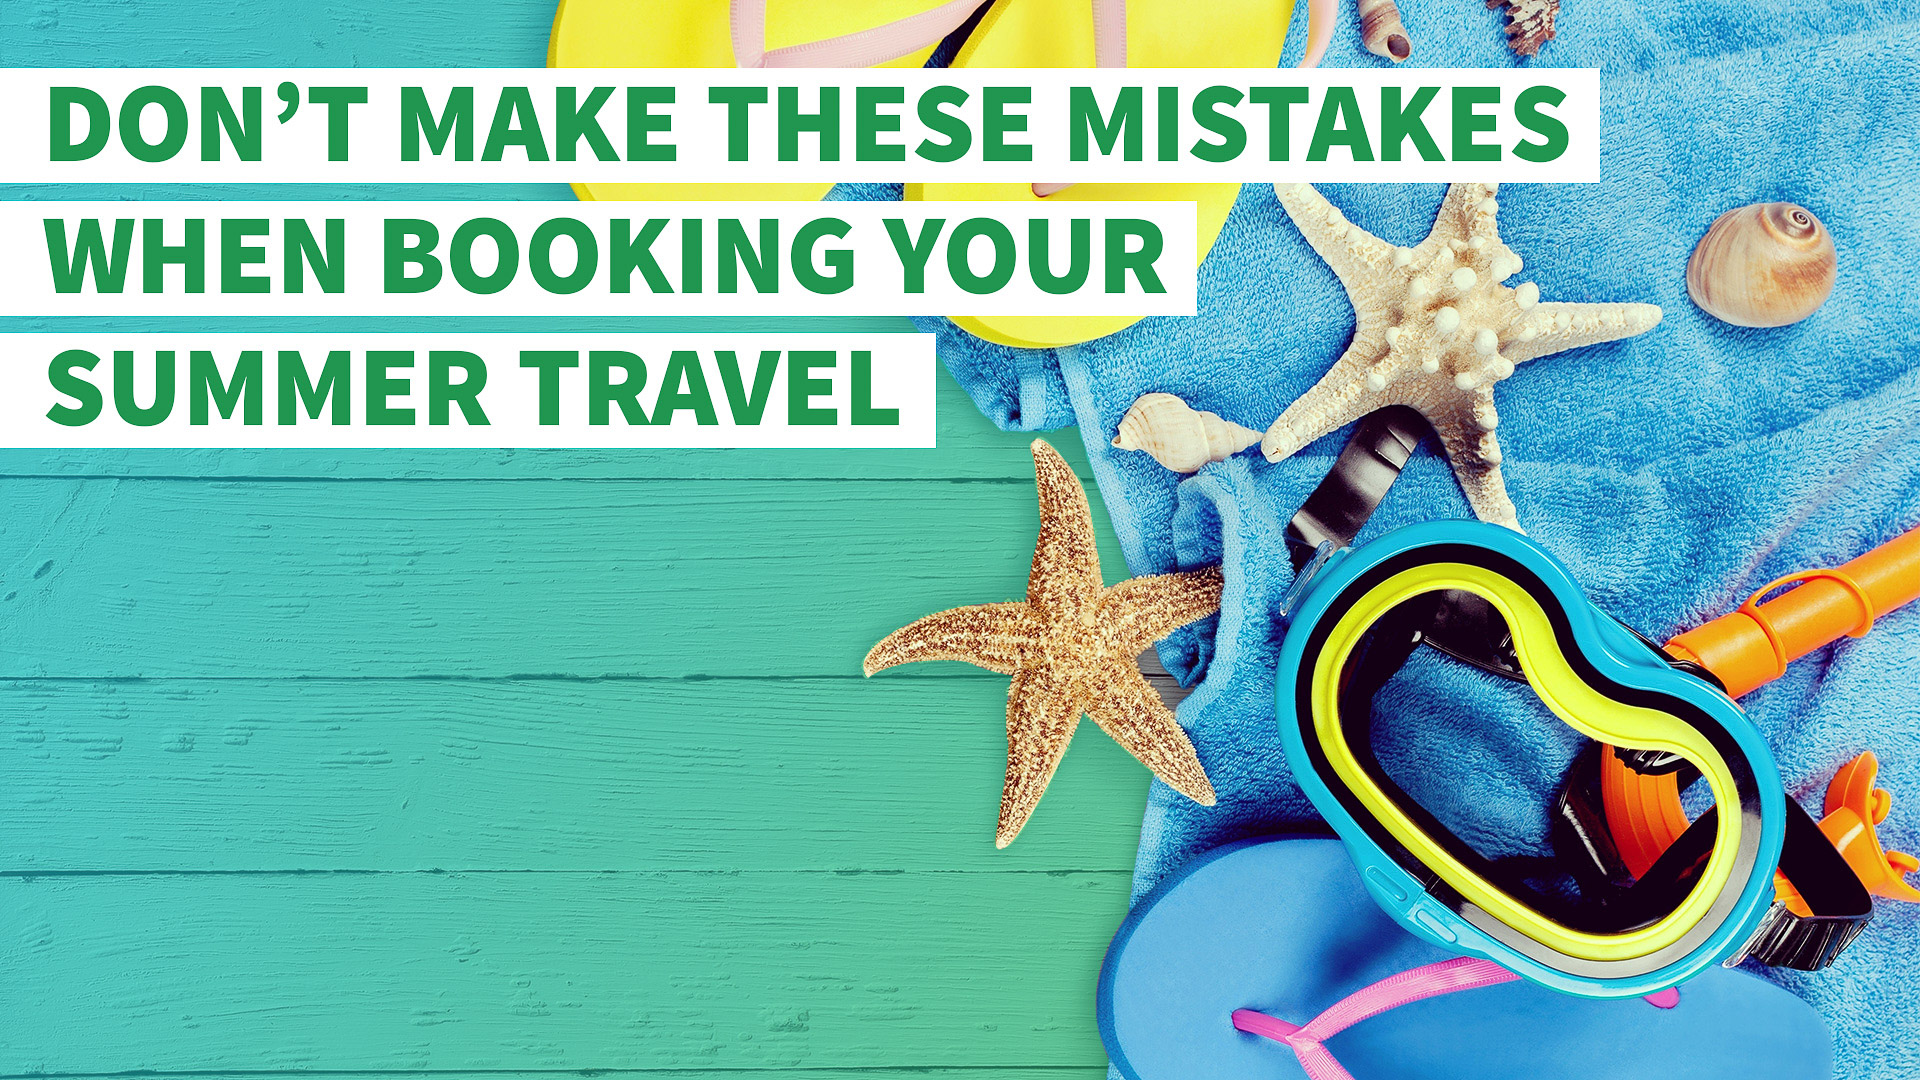 Don't Make These Costly Mistakes When Booking Your Summer Travel